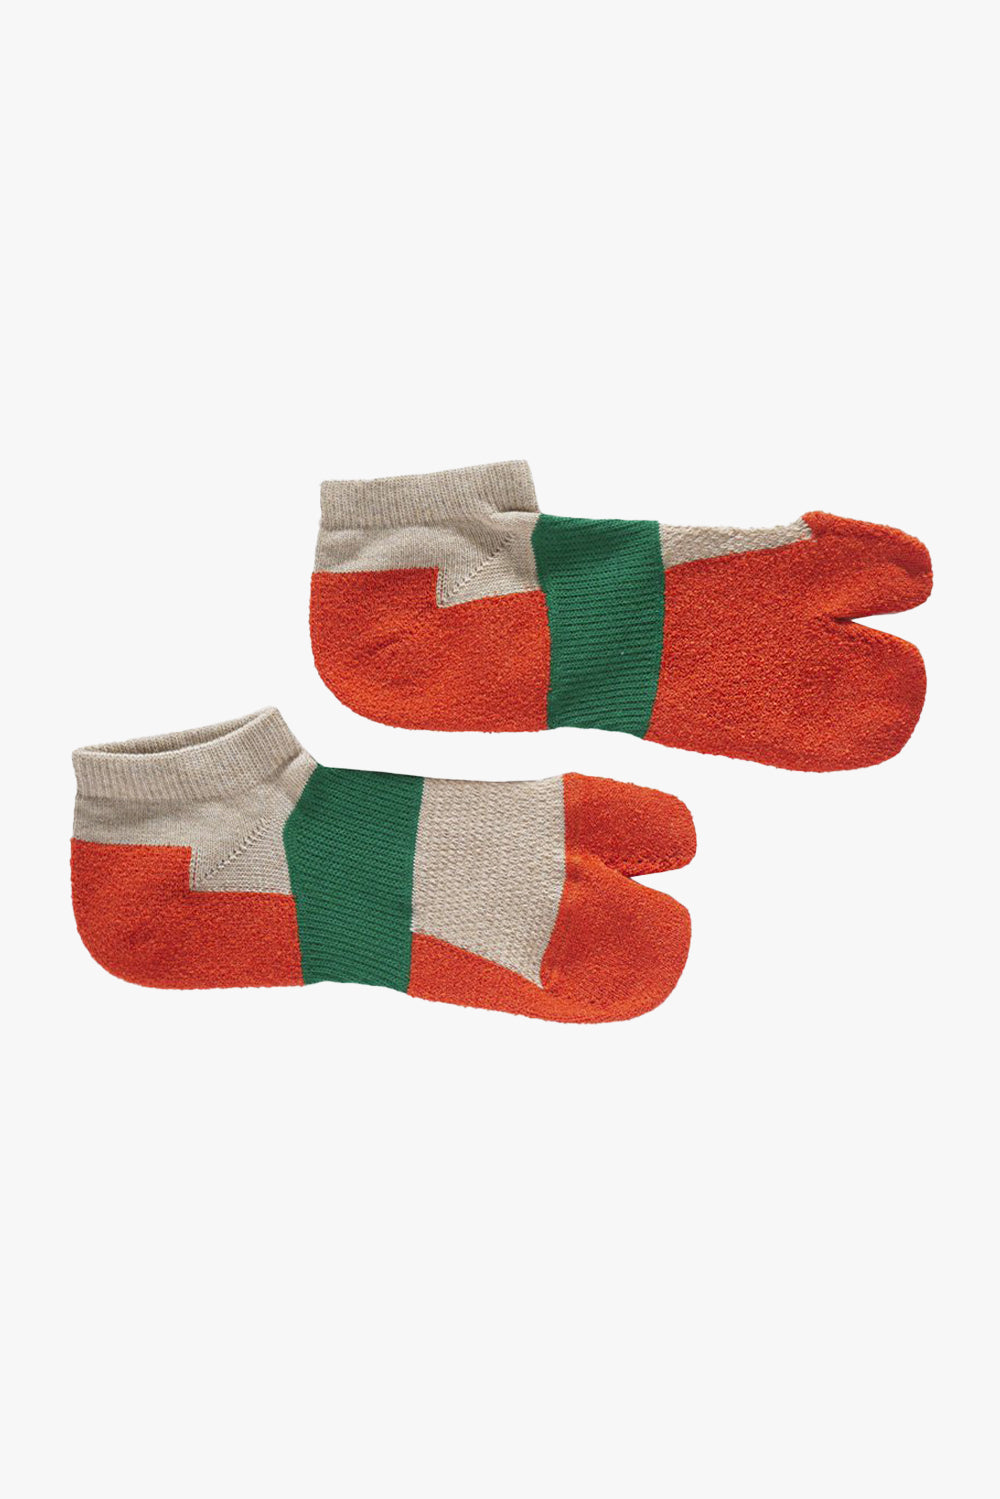 Tri-Color Tabi Socks, Beige